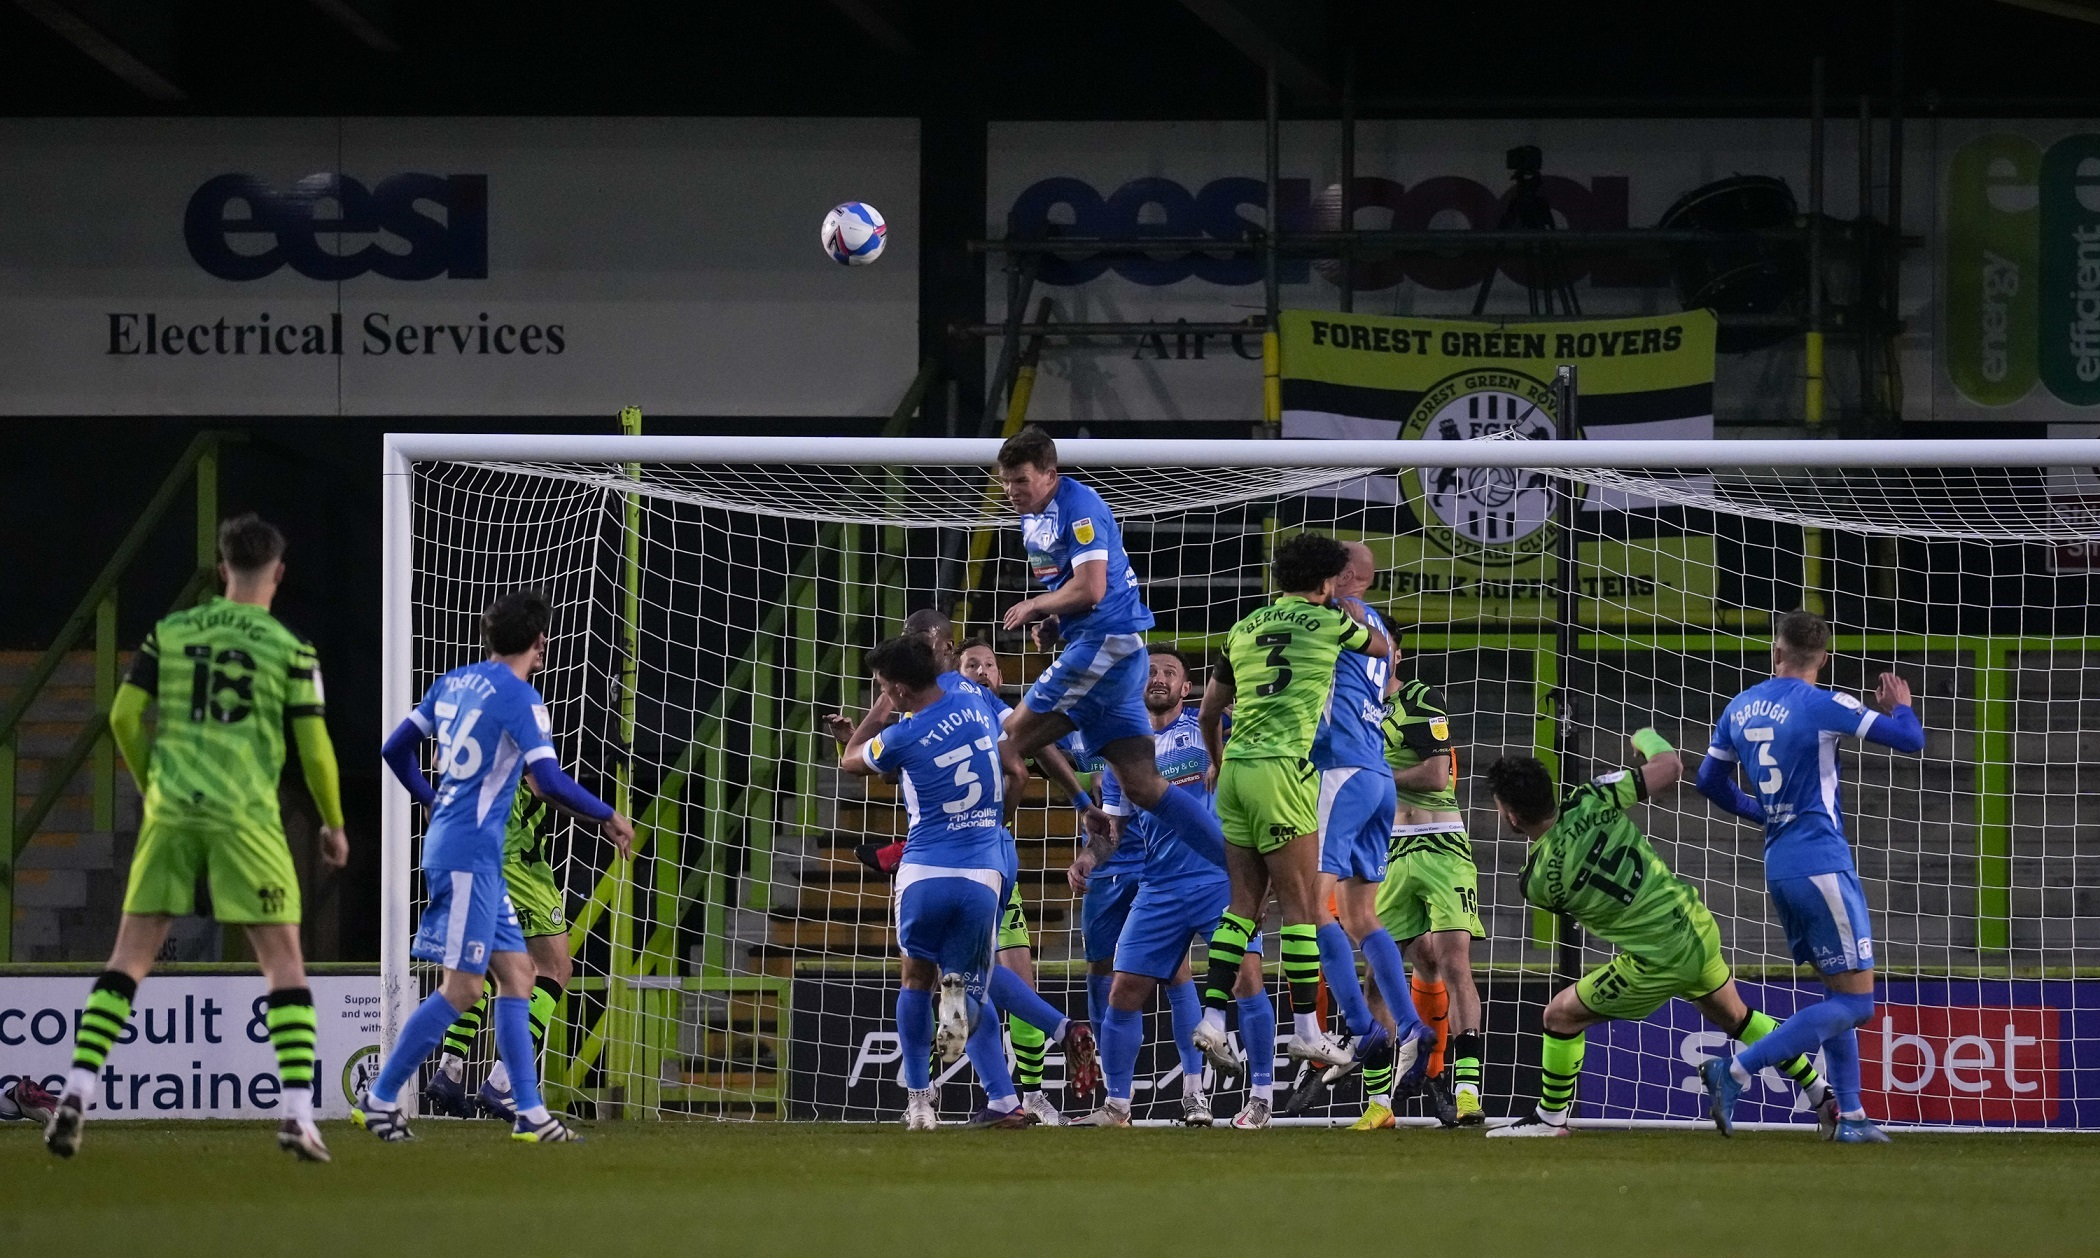 HEADER: Barrow defended resolutely throughout to frustrate Forest Green